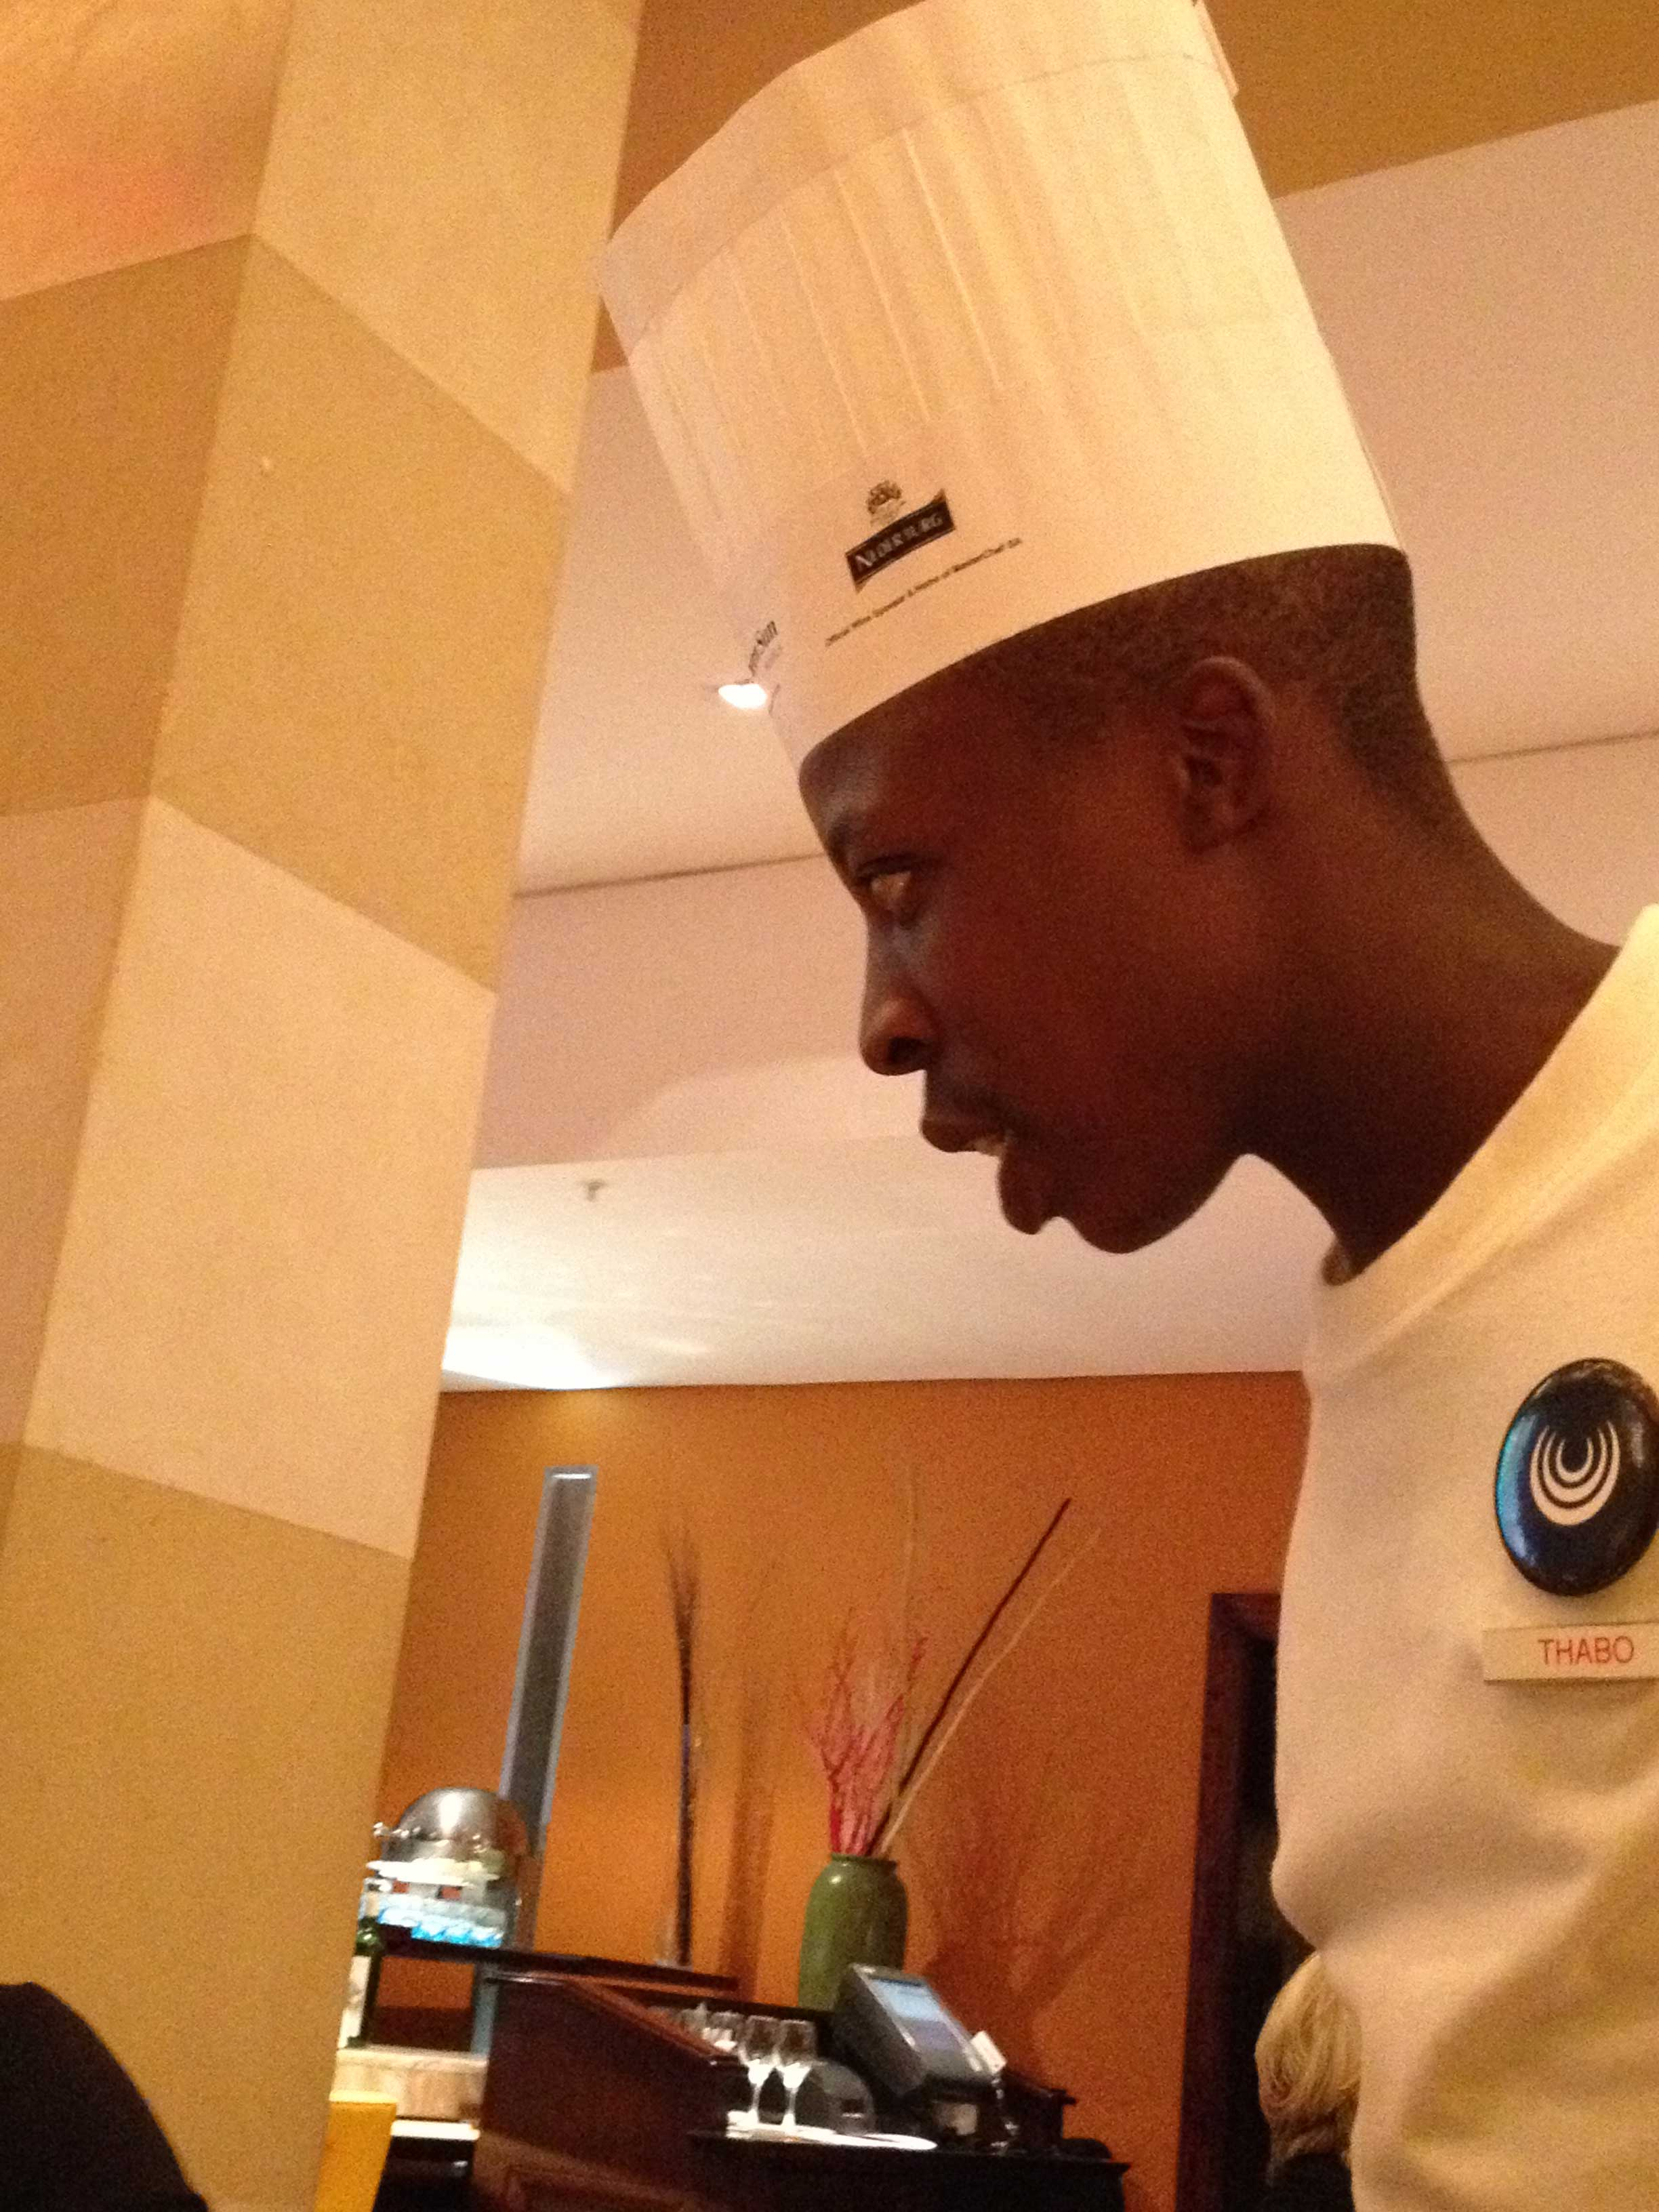 Thabo in his chef's hat